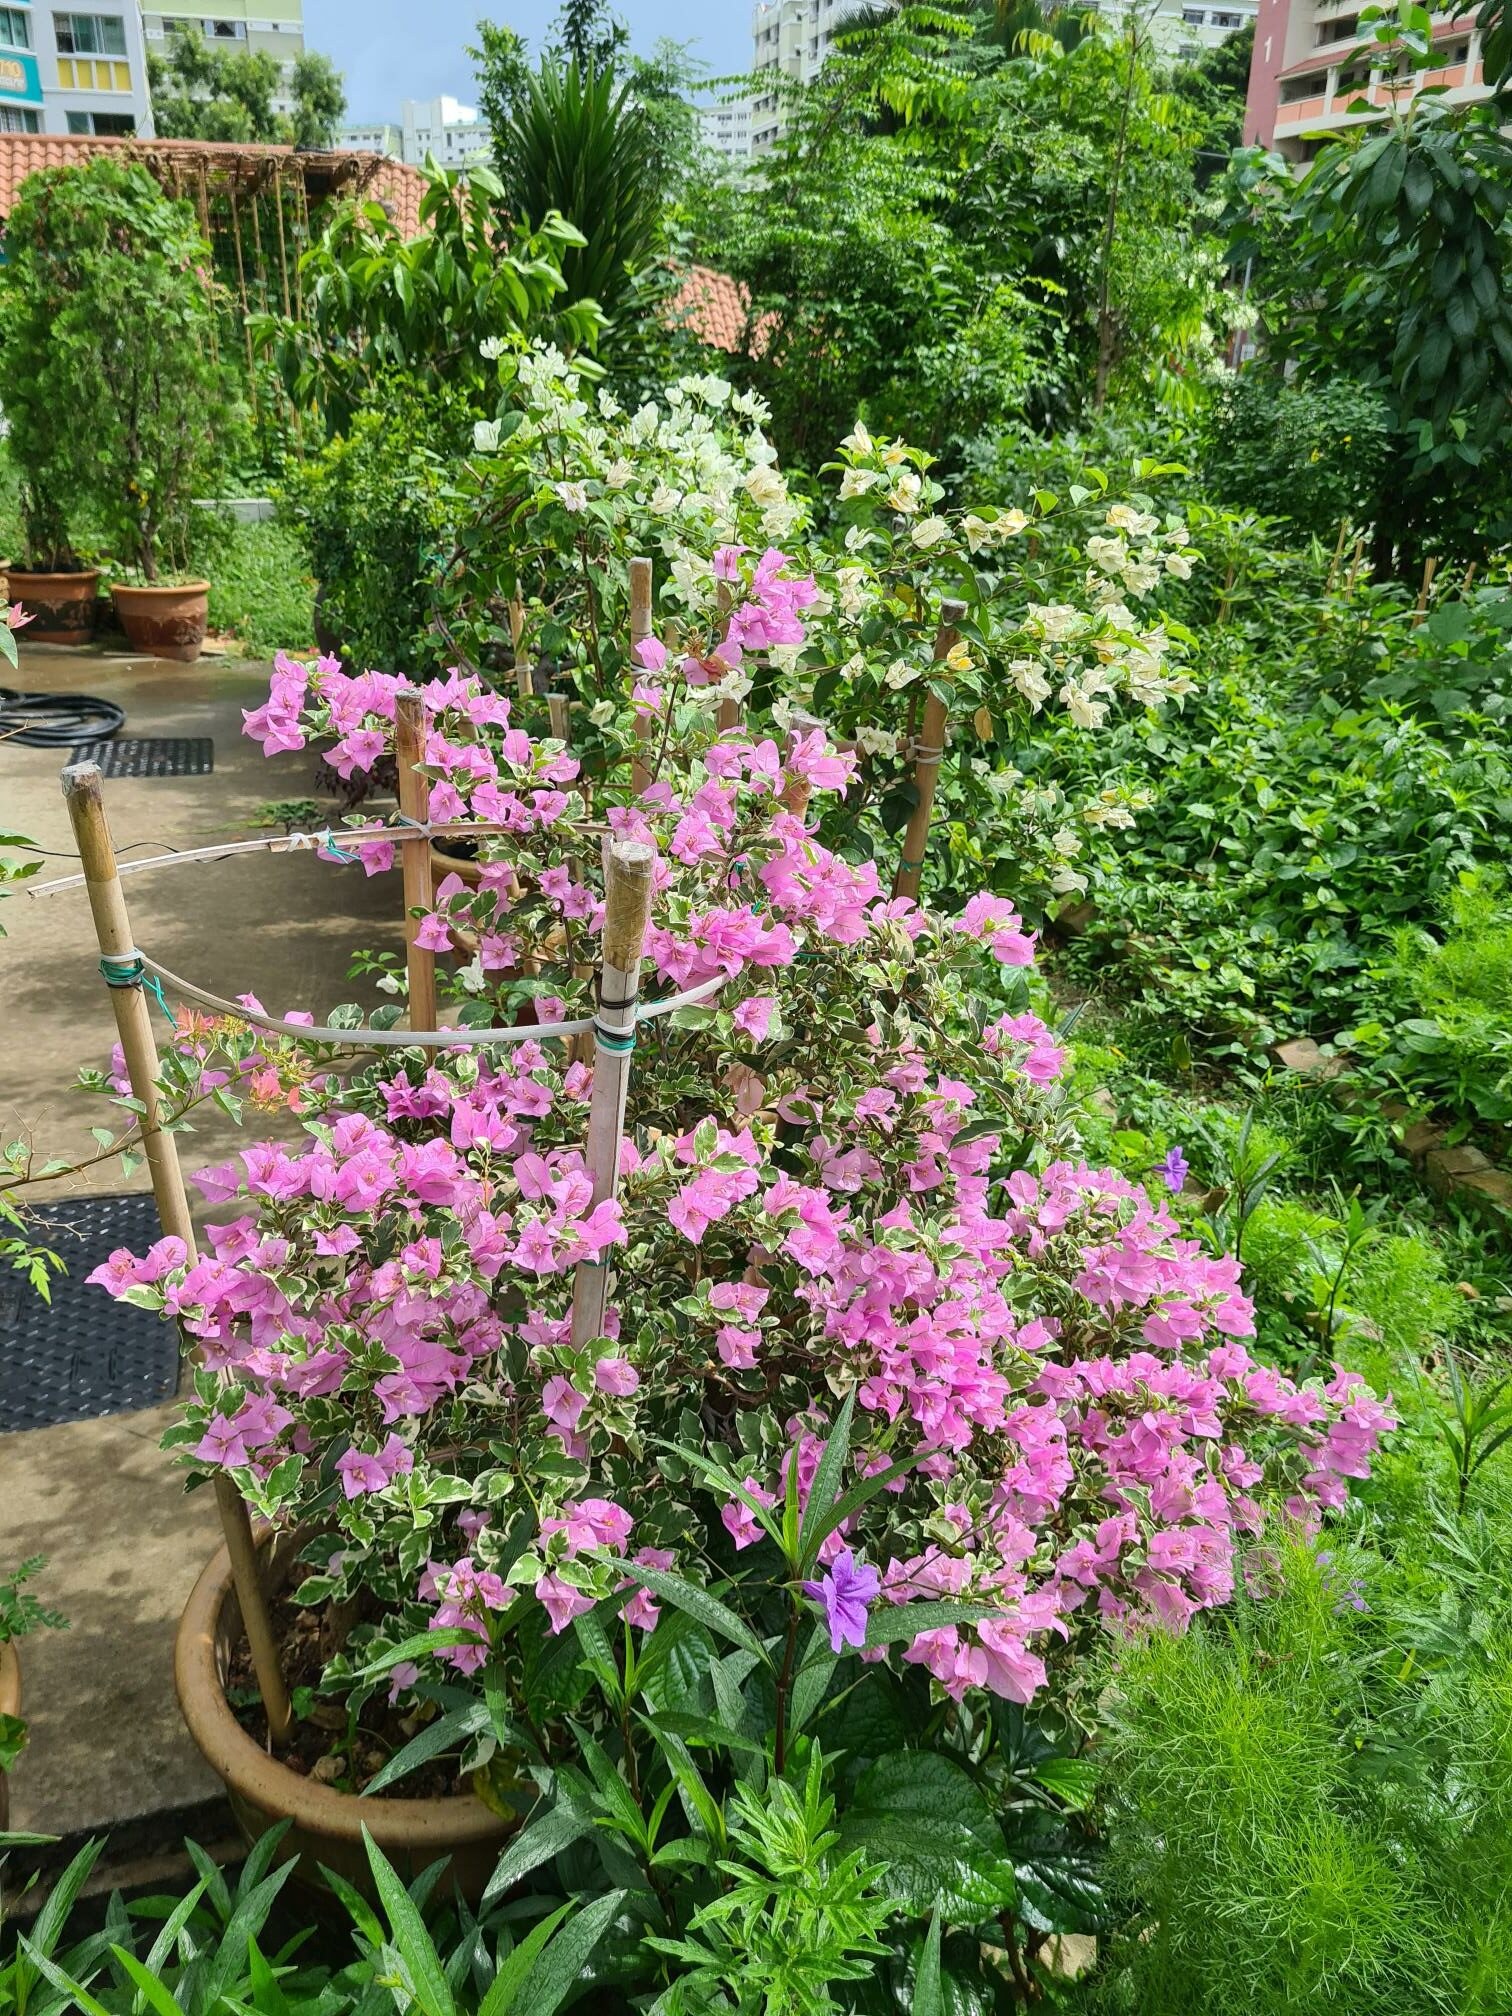 Bouganvillea with light pink flowers and variegated foliage